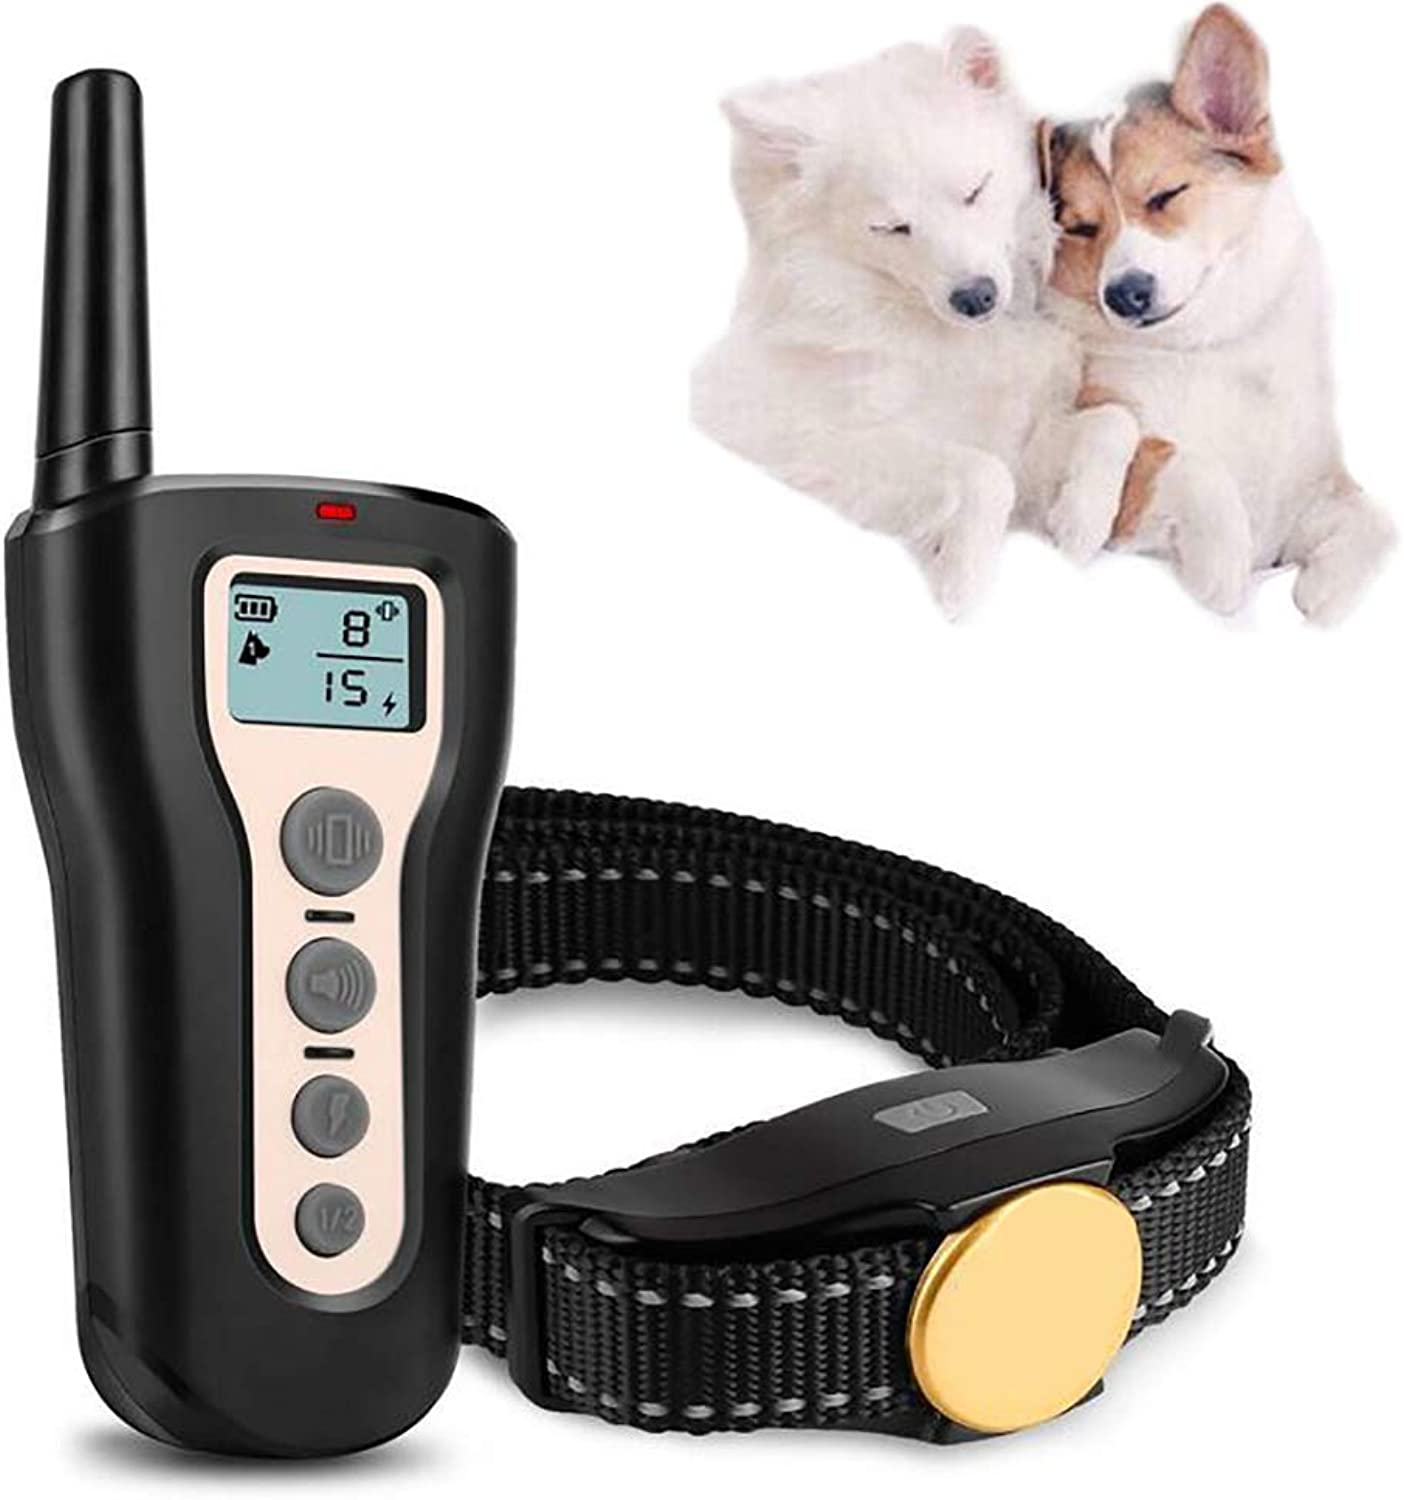 Dog Training Collars  Electric Sport Dog Shock Collar with Remote, Rechargeable, with Beep Vibration Shock for Small Medium Large Dogs